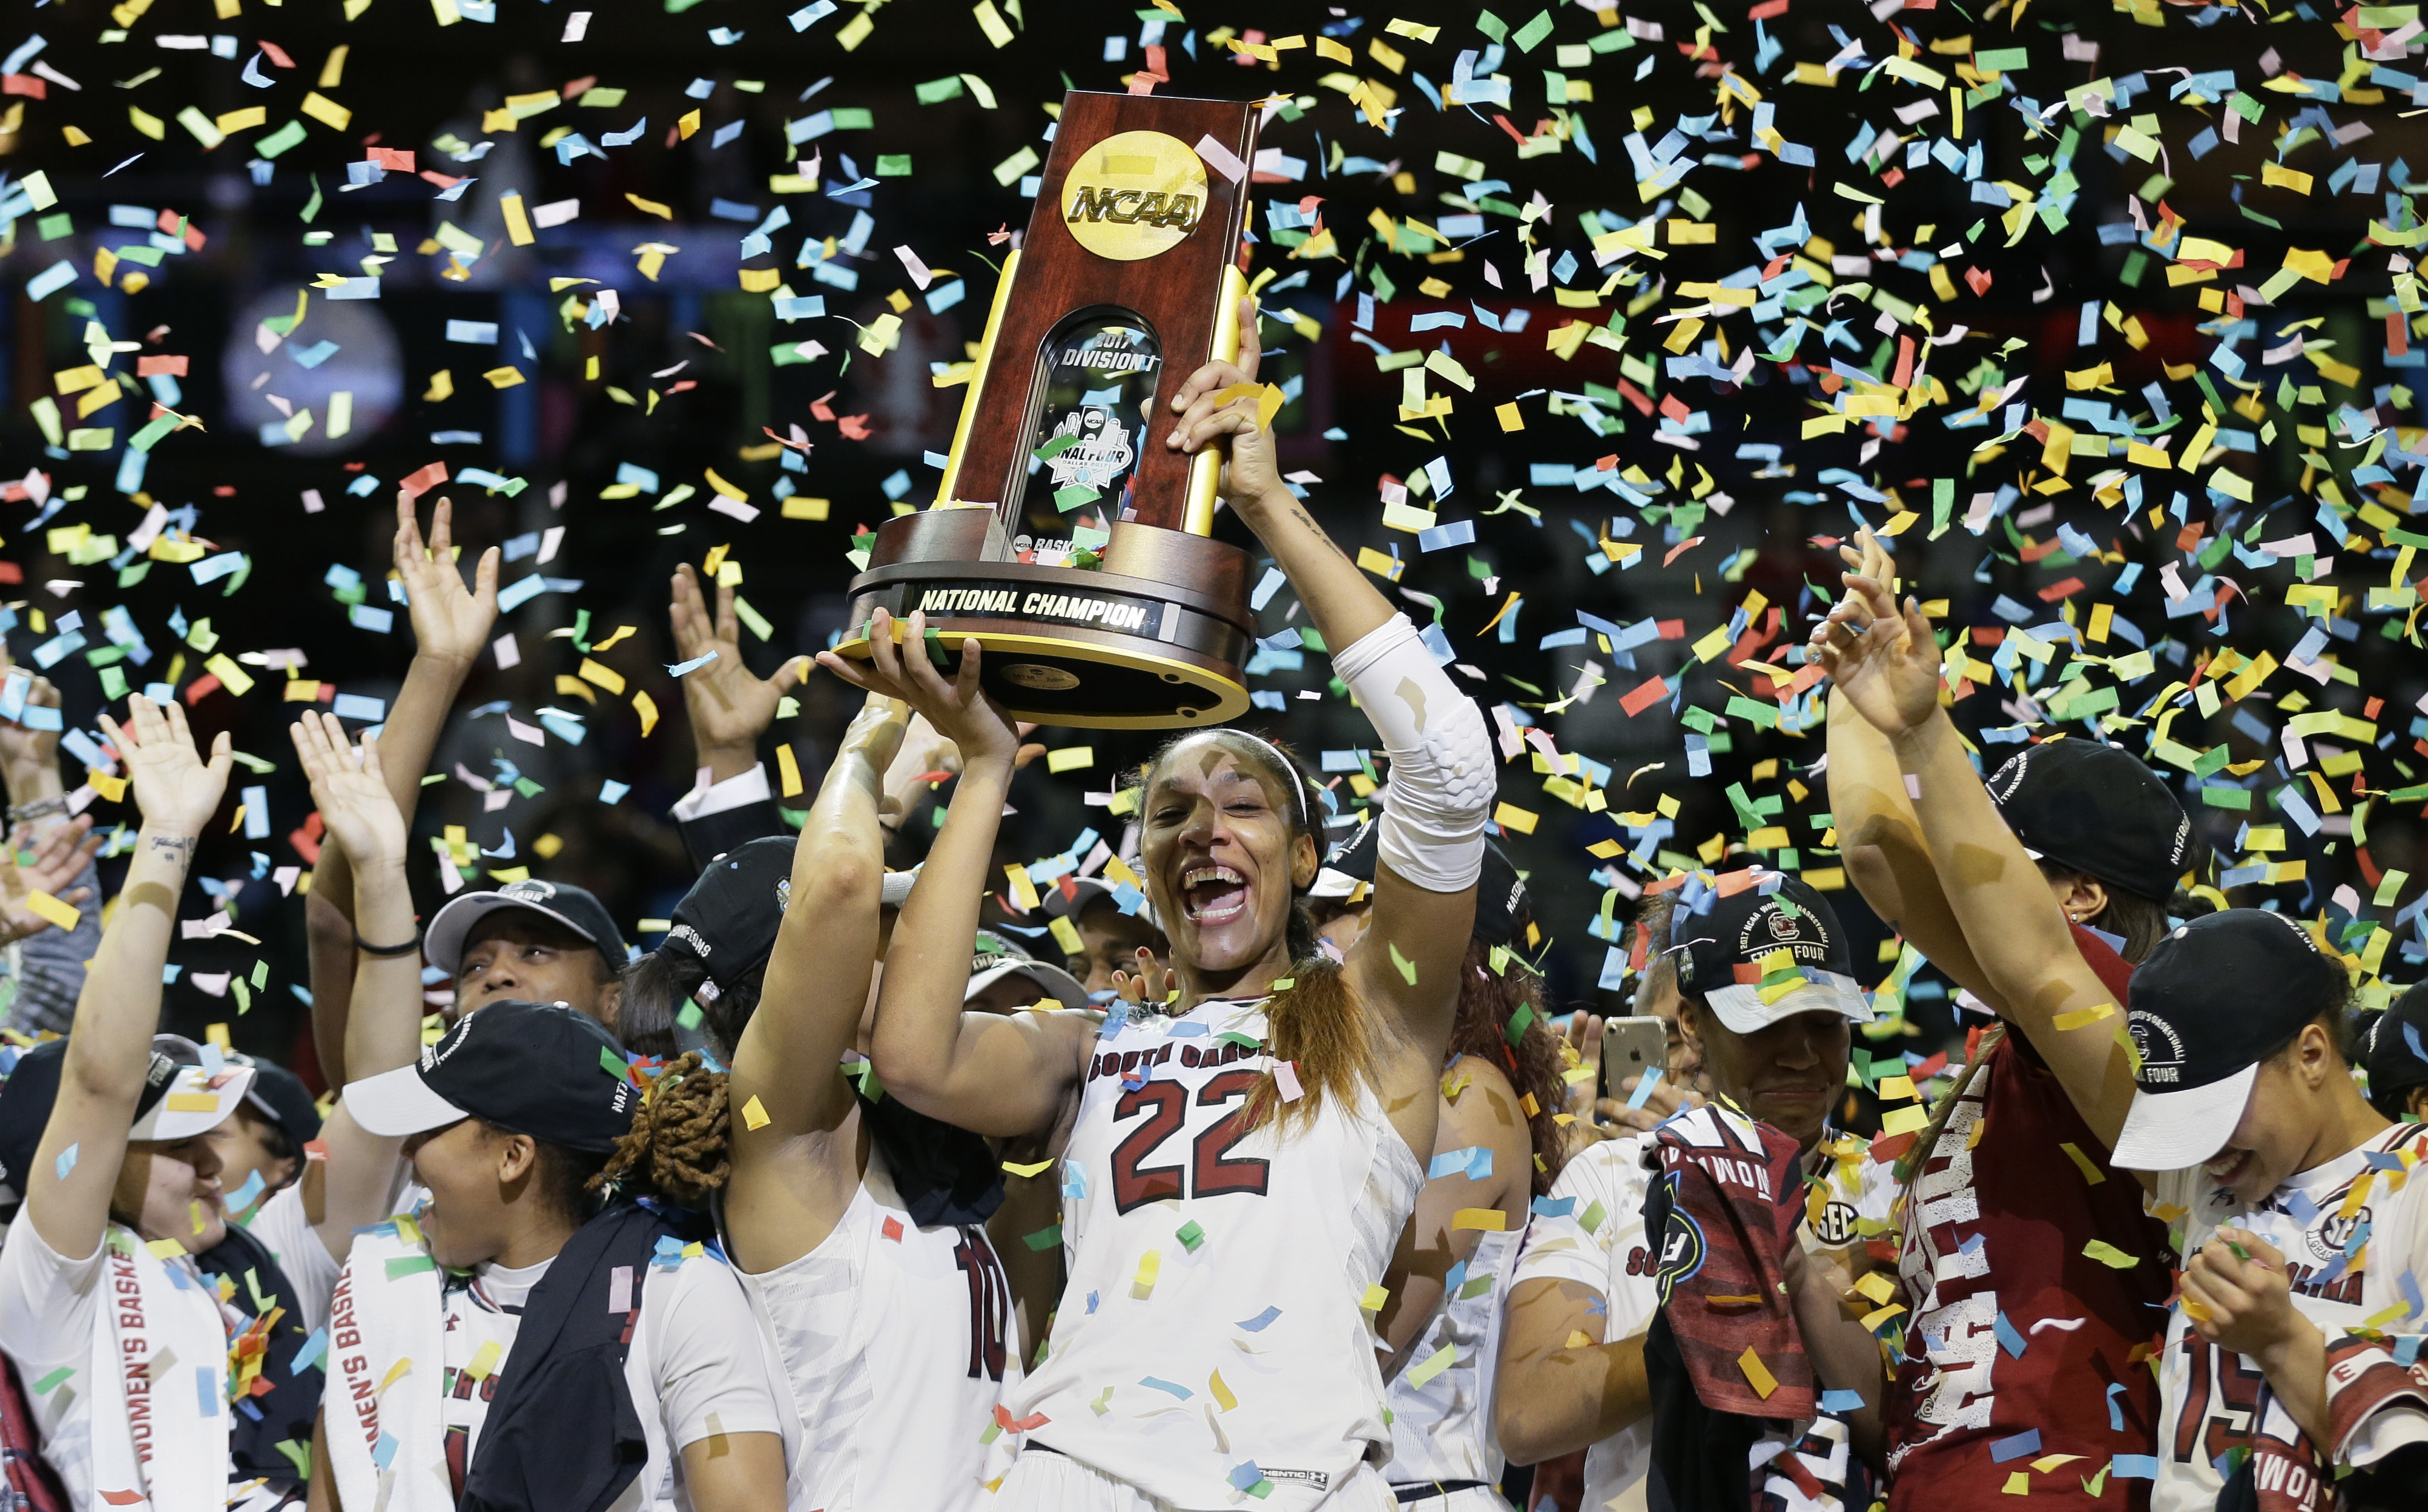 South Carolina forward A'ja Wilson (22) holds the trophy as she and her teammates celebrate a win over Mississippi State in the final of NCAA women's Final Four college basketball tournament, Sunday, April 2, 2017, in Dallas. South Carolina won 67-55. (AP